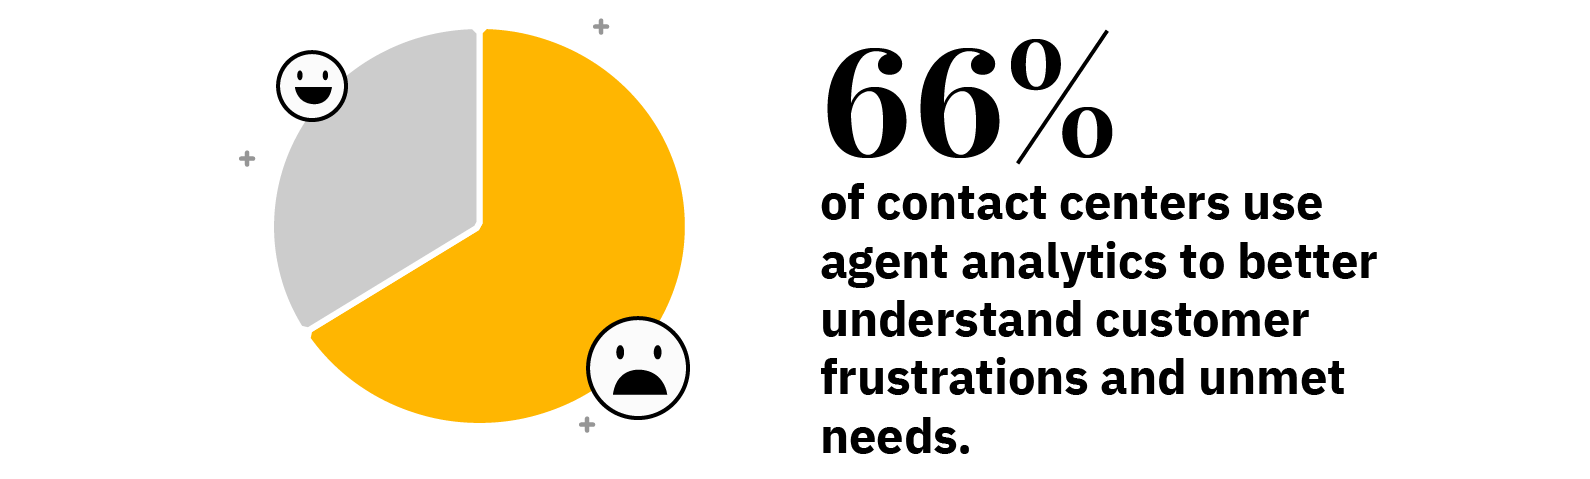 66% of contact centers use agent analytics to better understand customer frustrations and unmet needs.